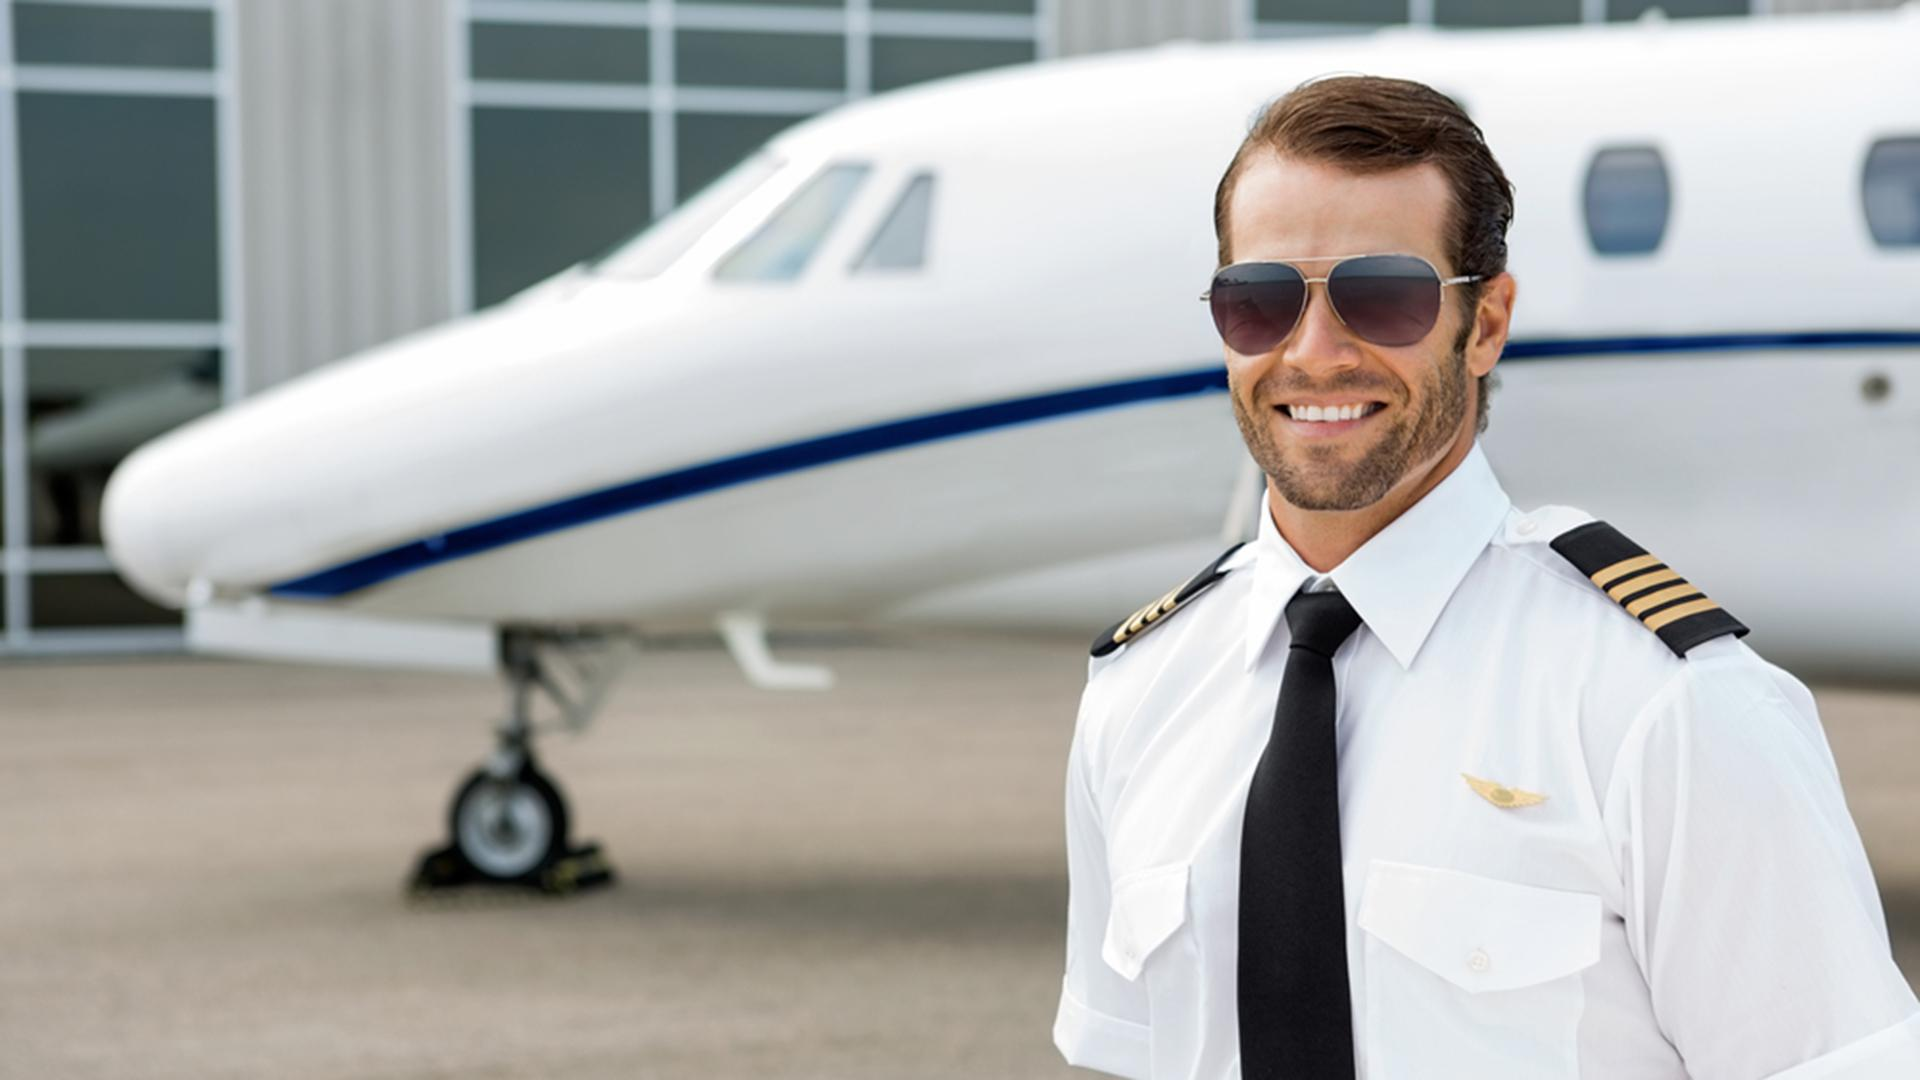 Questions Every Passenger Wants To Ask A Pilot, Answered